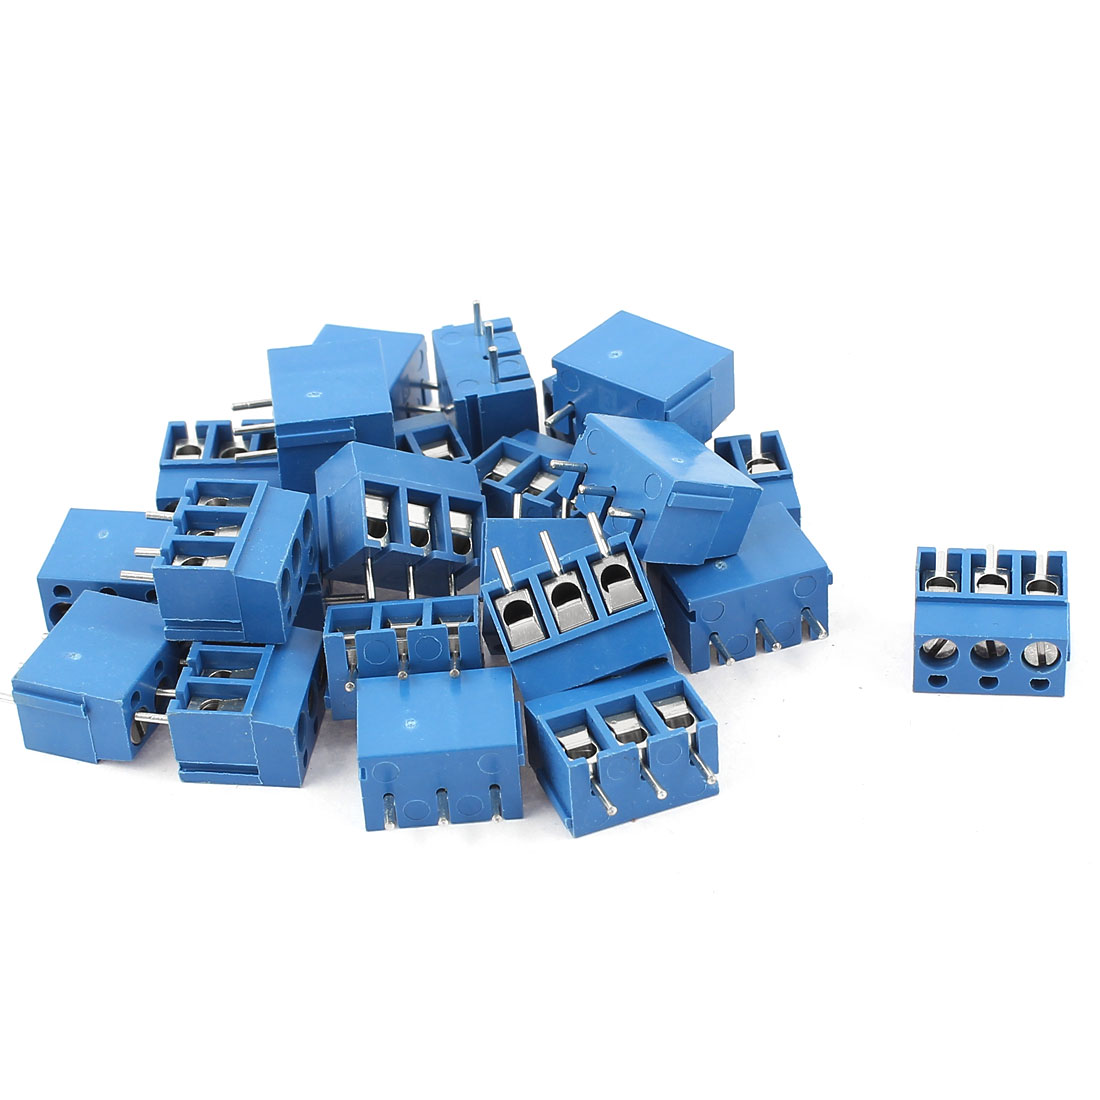 23 Pcs 3Way 3 Terminals PCB Screw Terminal Block Connector for 14-22AWG Wire